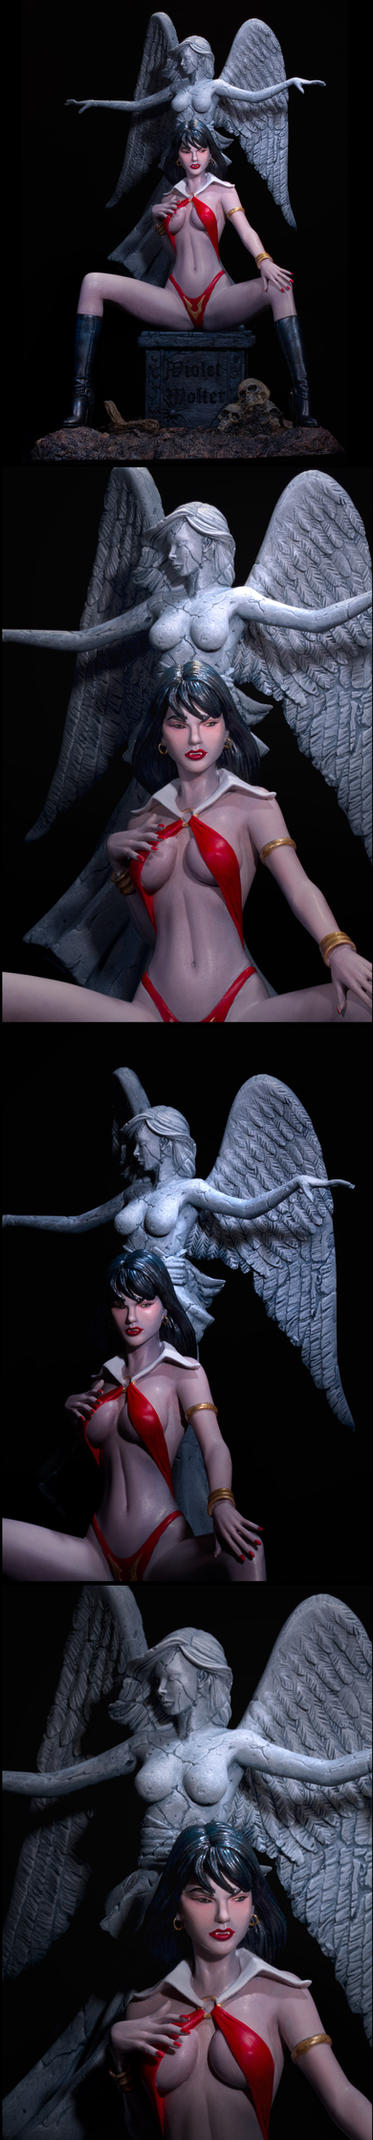 Vampirella, The Lady is a Vamp Auction by sivousplay